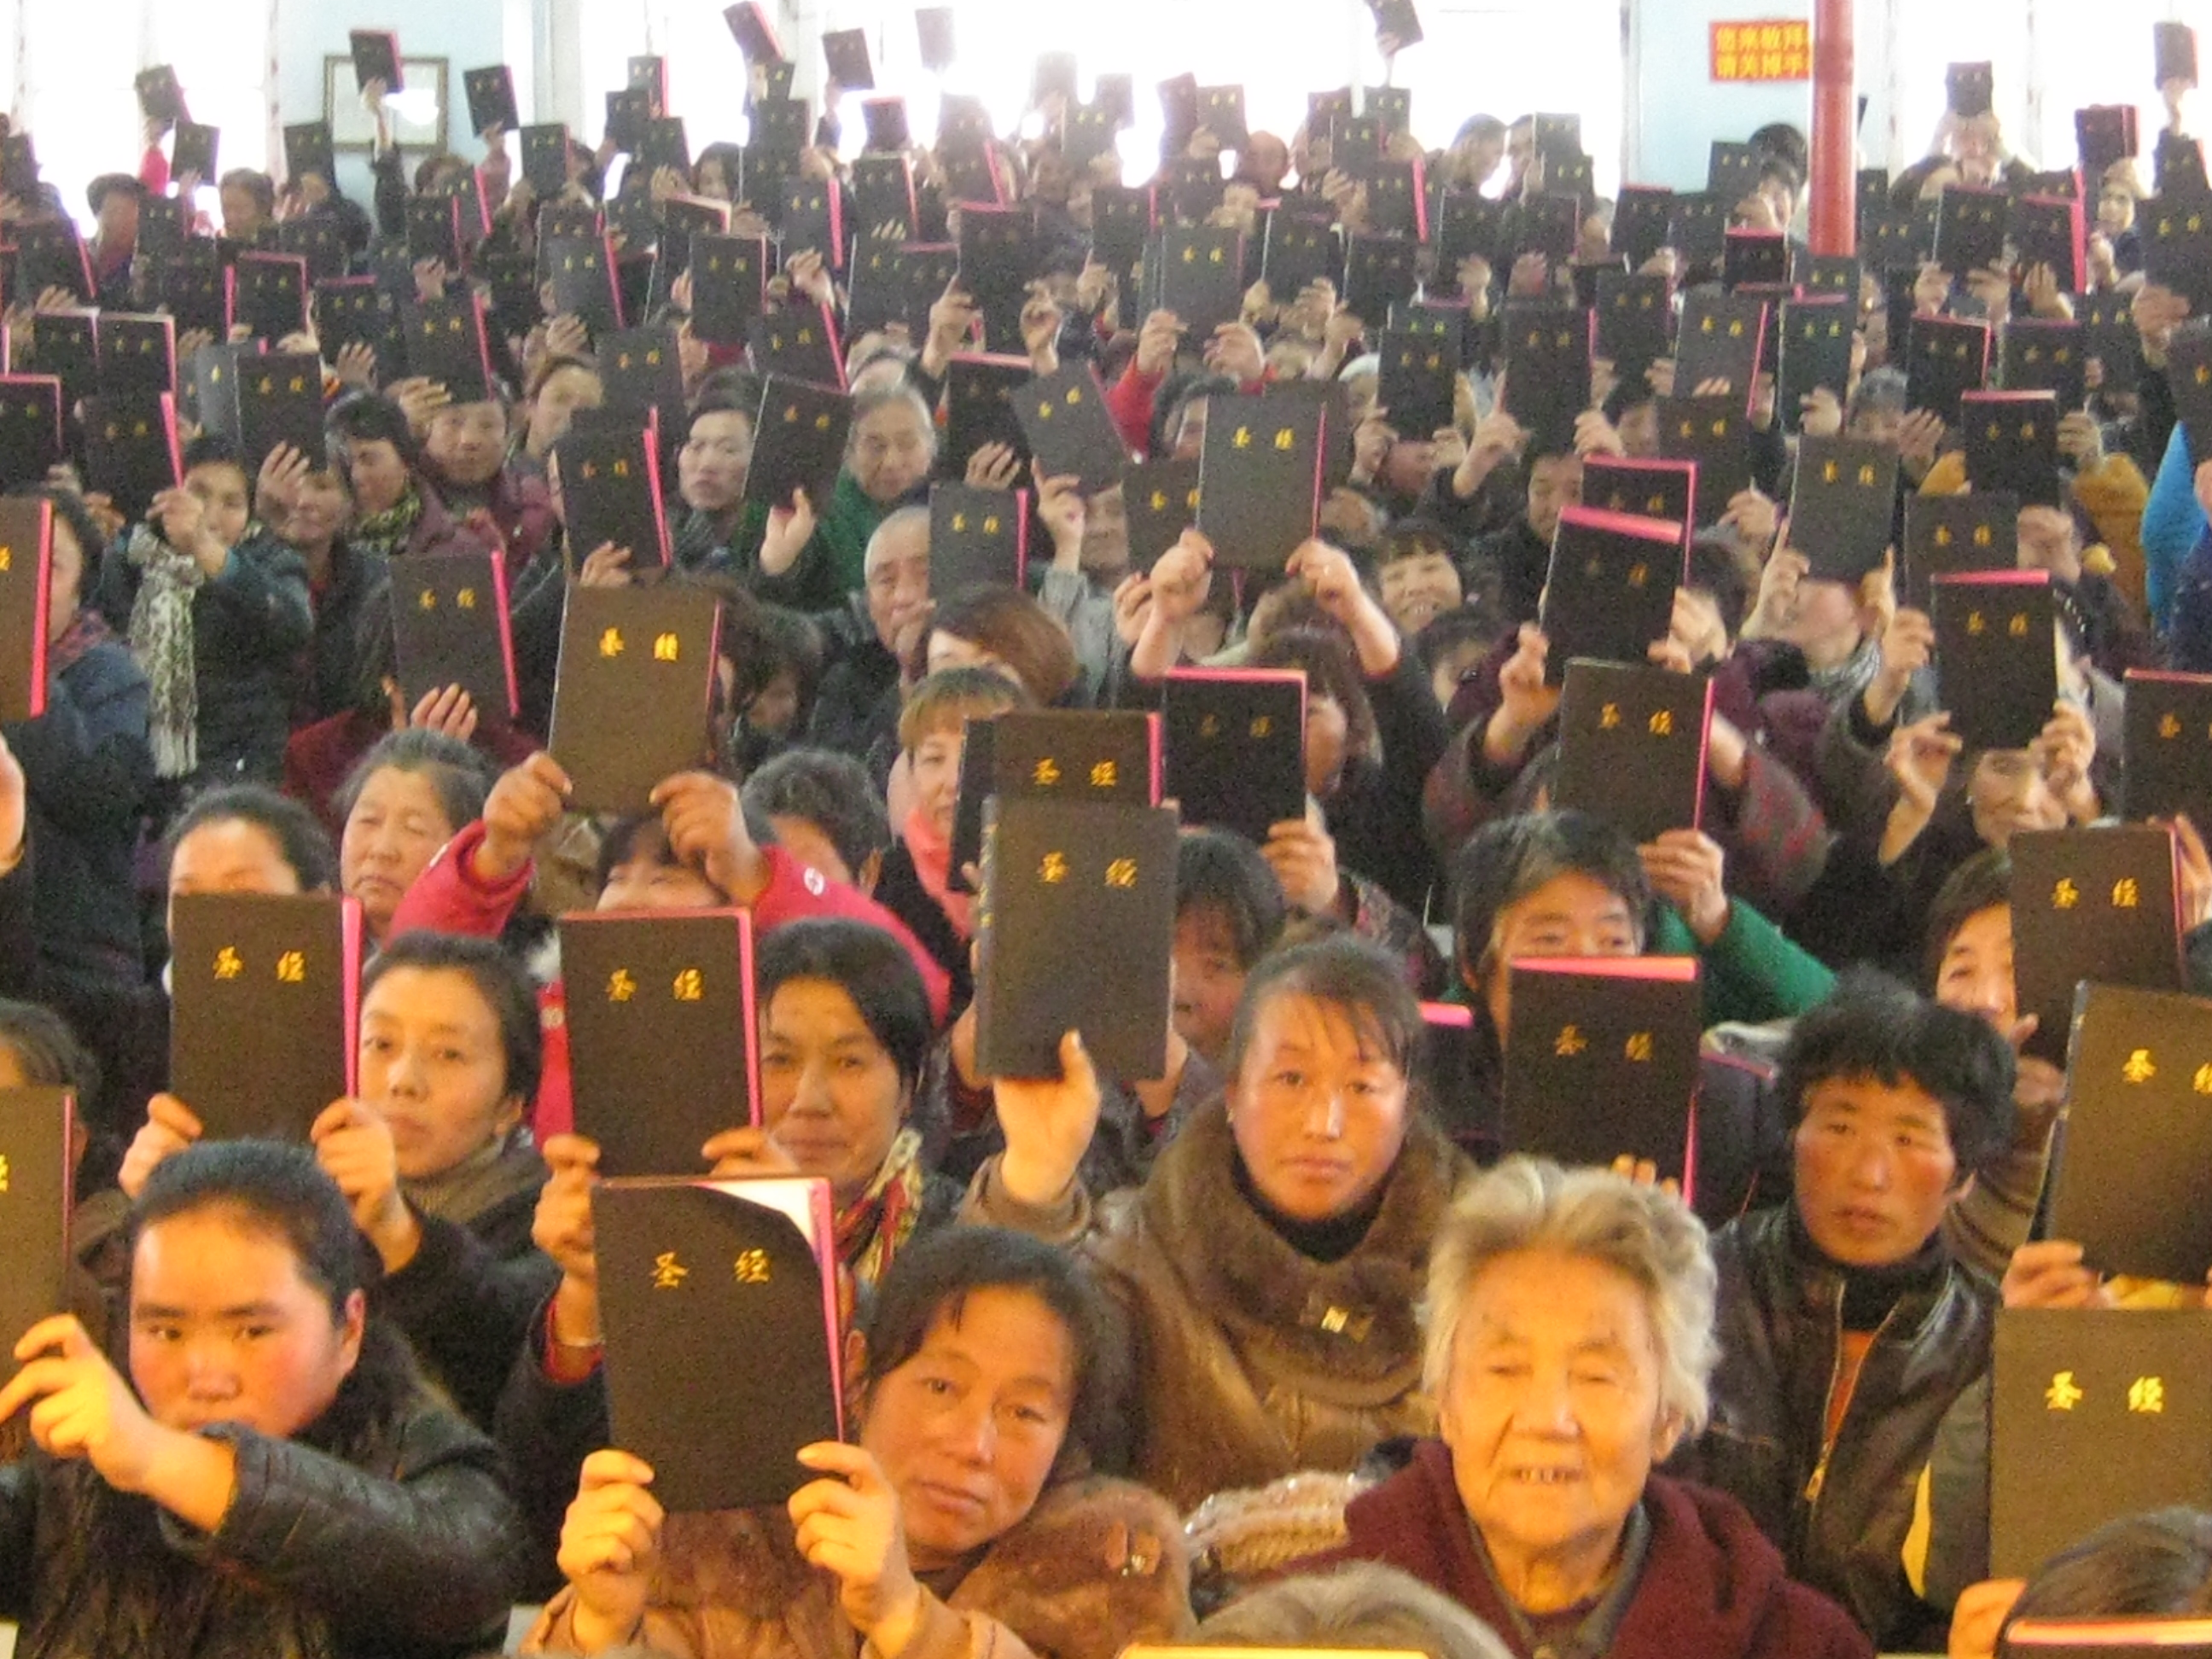 Bibles for China expands